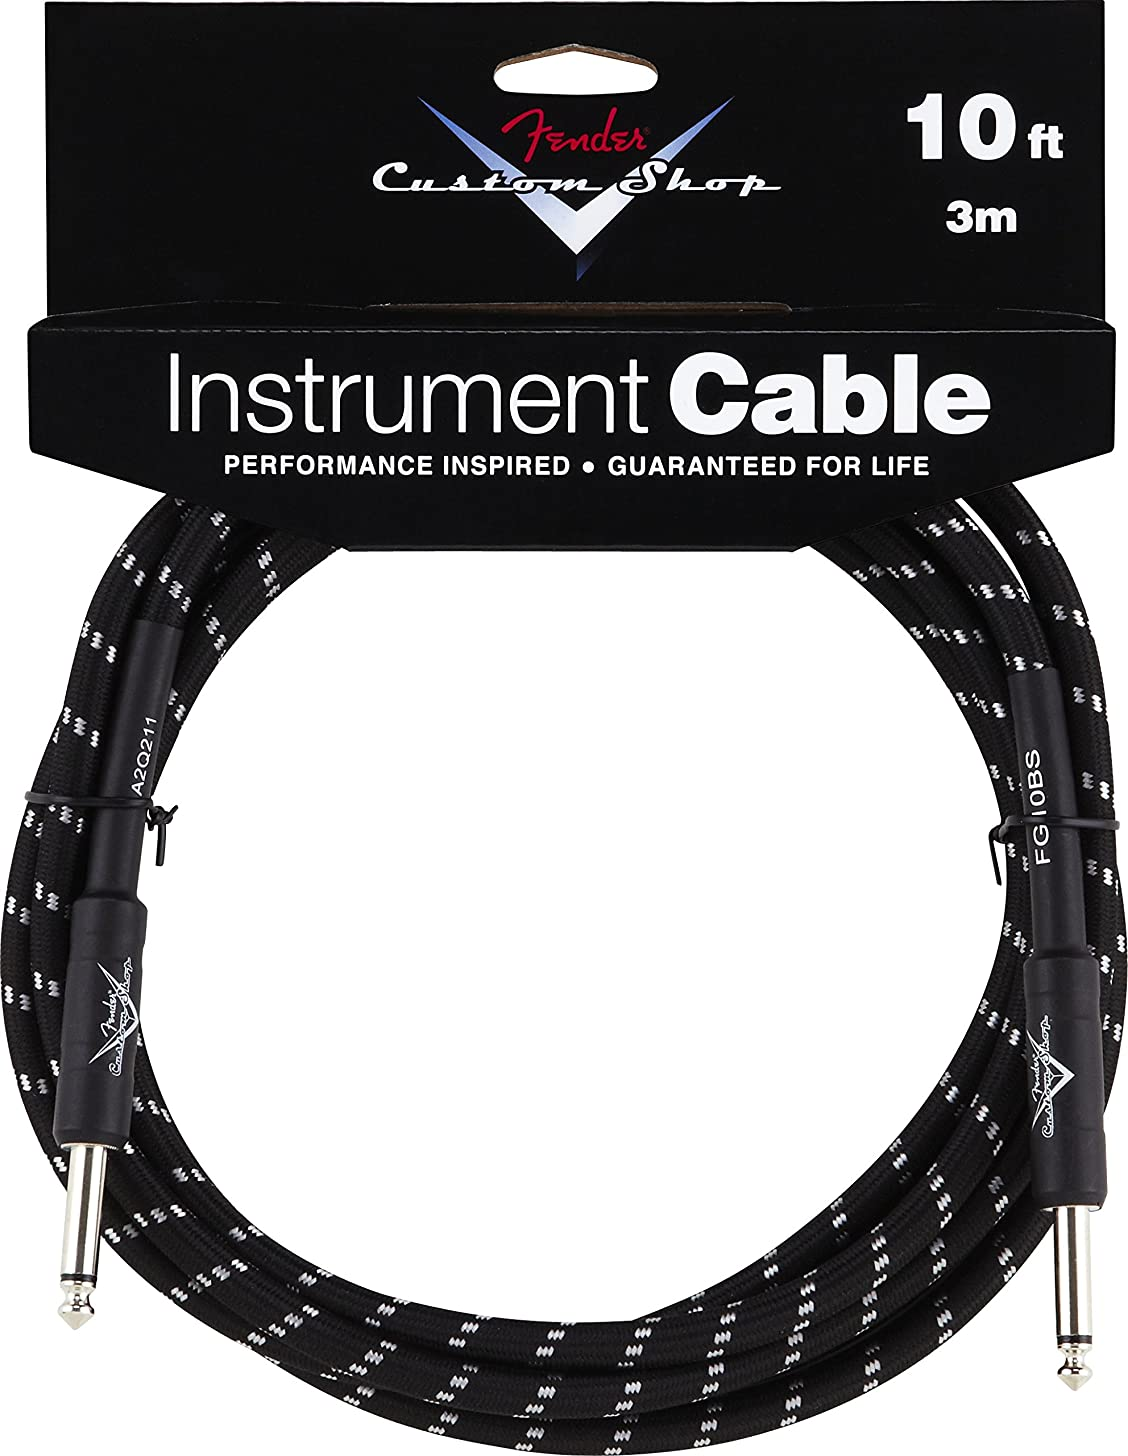 Fender Custom Shop Performance Series Cable (Straight-Straight Angle) for electric guitar, bass guitar, electric mandolin, pro audio